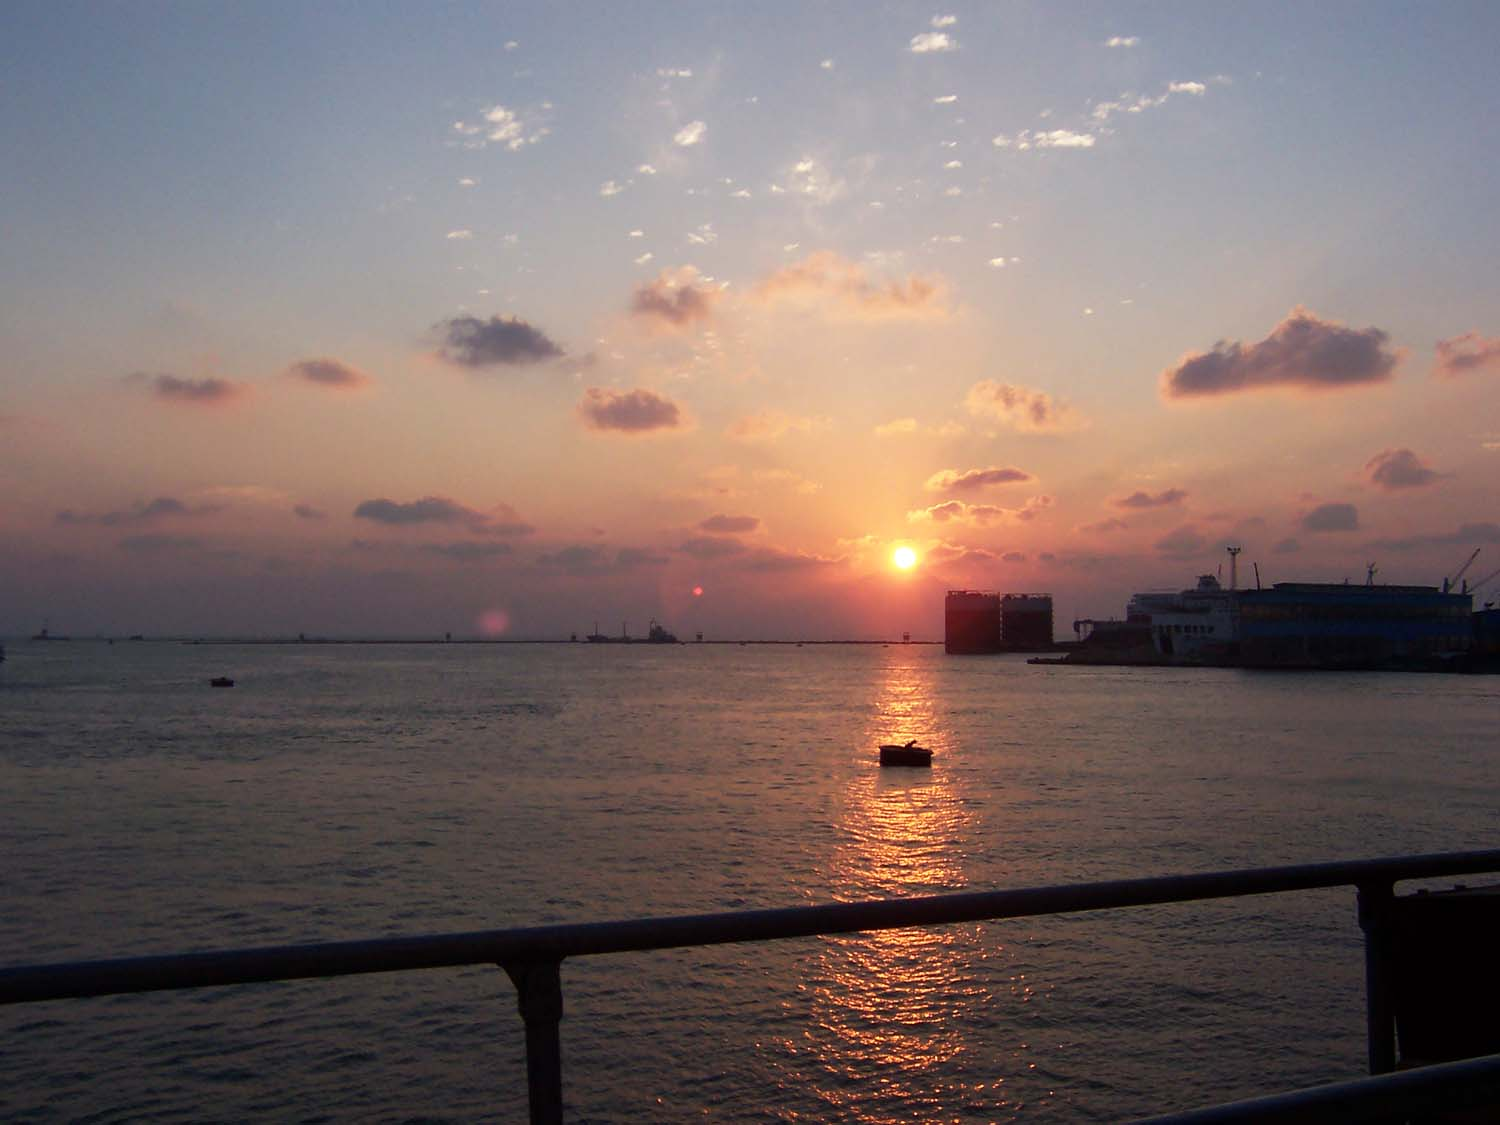 Impression, Sunrise - Port Said